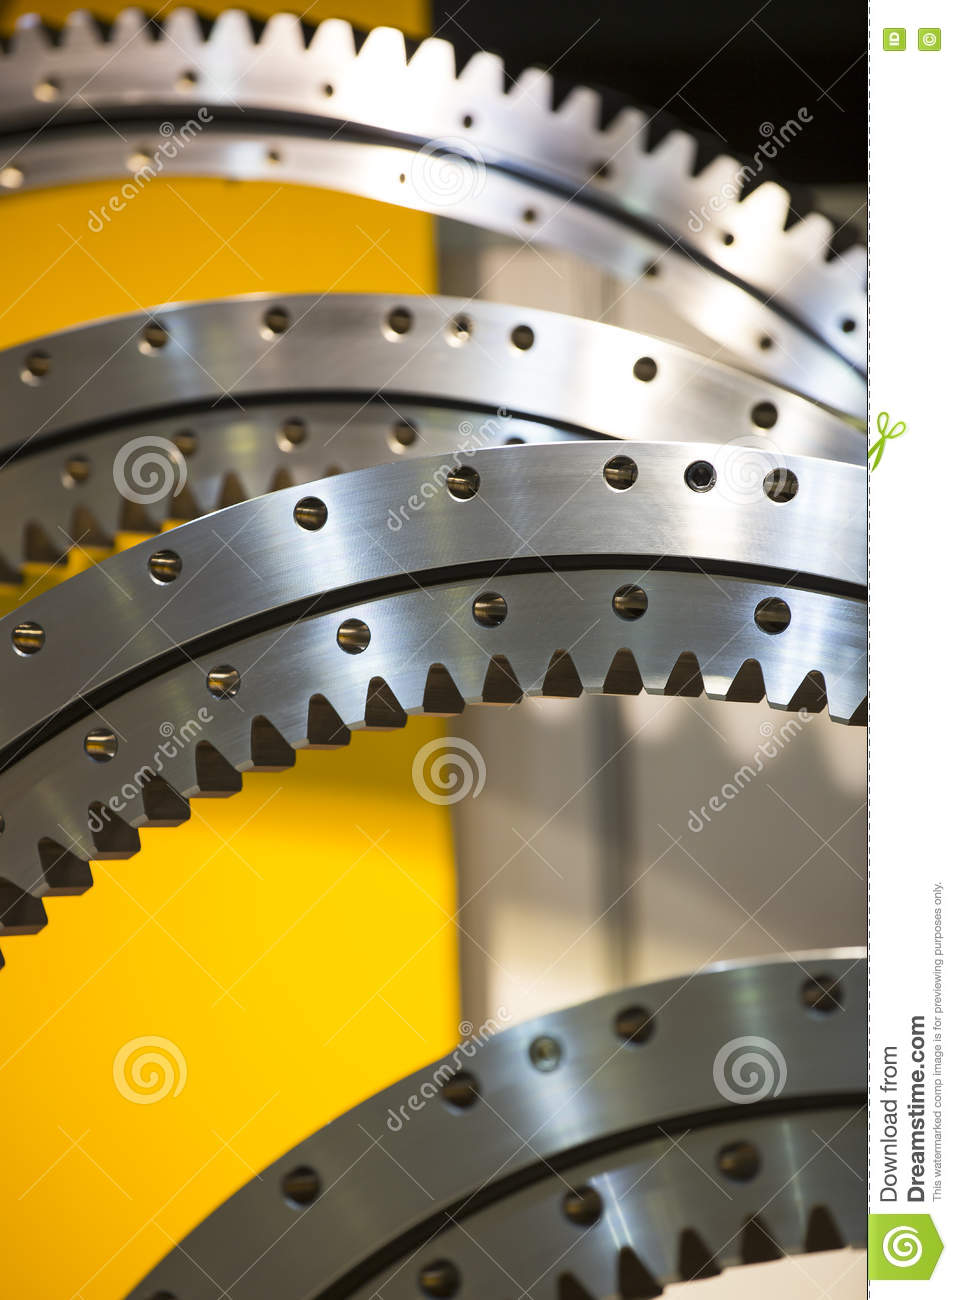 Big steel gear